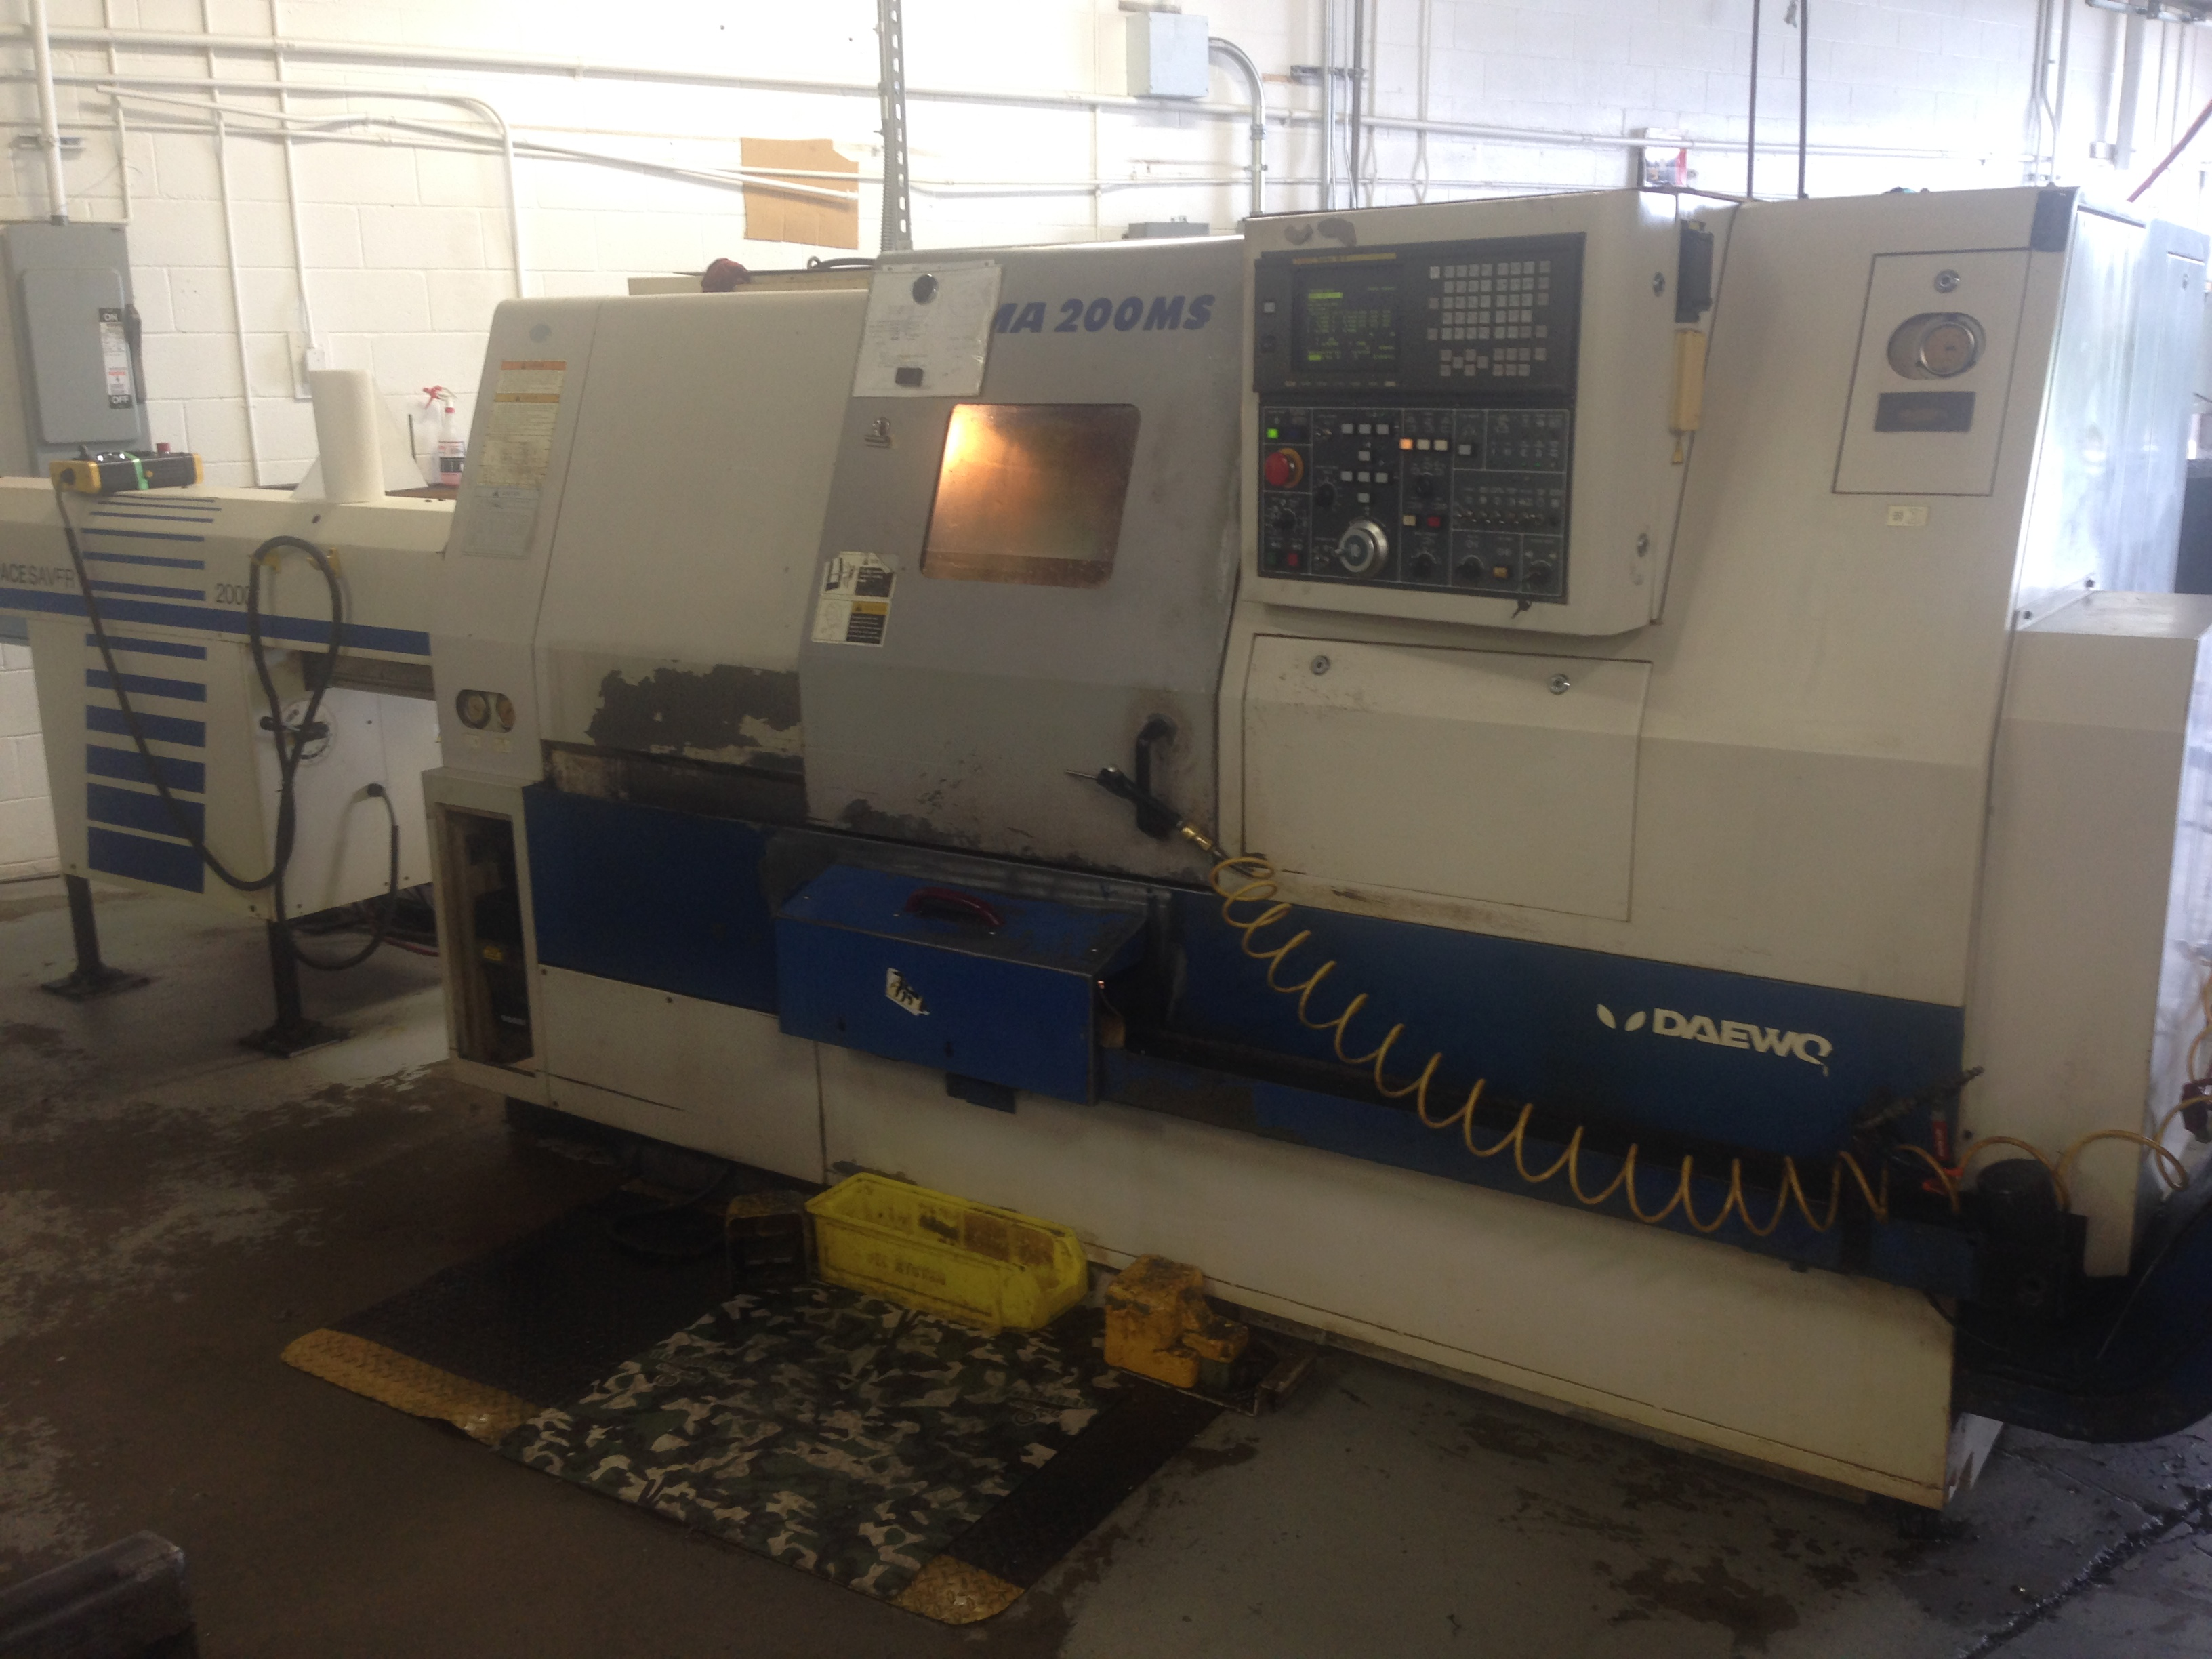 1998 Daewoo Puma 200 MS; Fanuc 18T Control; 12 Station Turret w/ Live Tools (4 Live Tools); Main Spindle & Sub Spindle w/ Collet Chucks; Parts Catcher and Conveyor;  Chip Conveyor; SMW 2000 Bar Feeder; Various Spindle Liners and Collet Pads